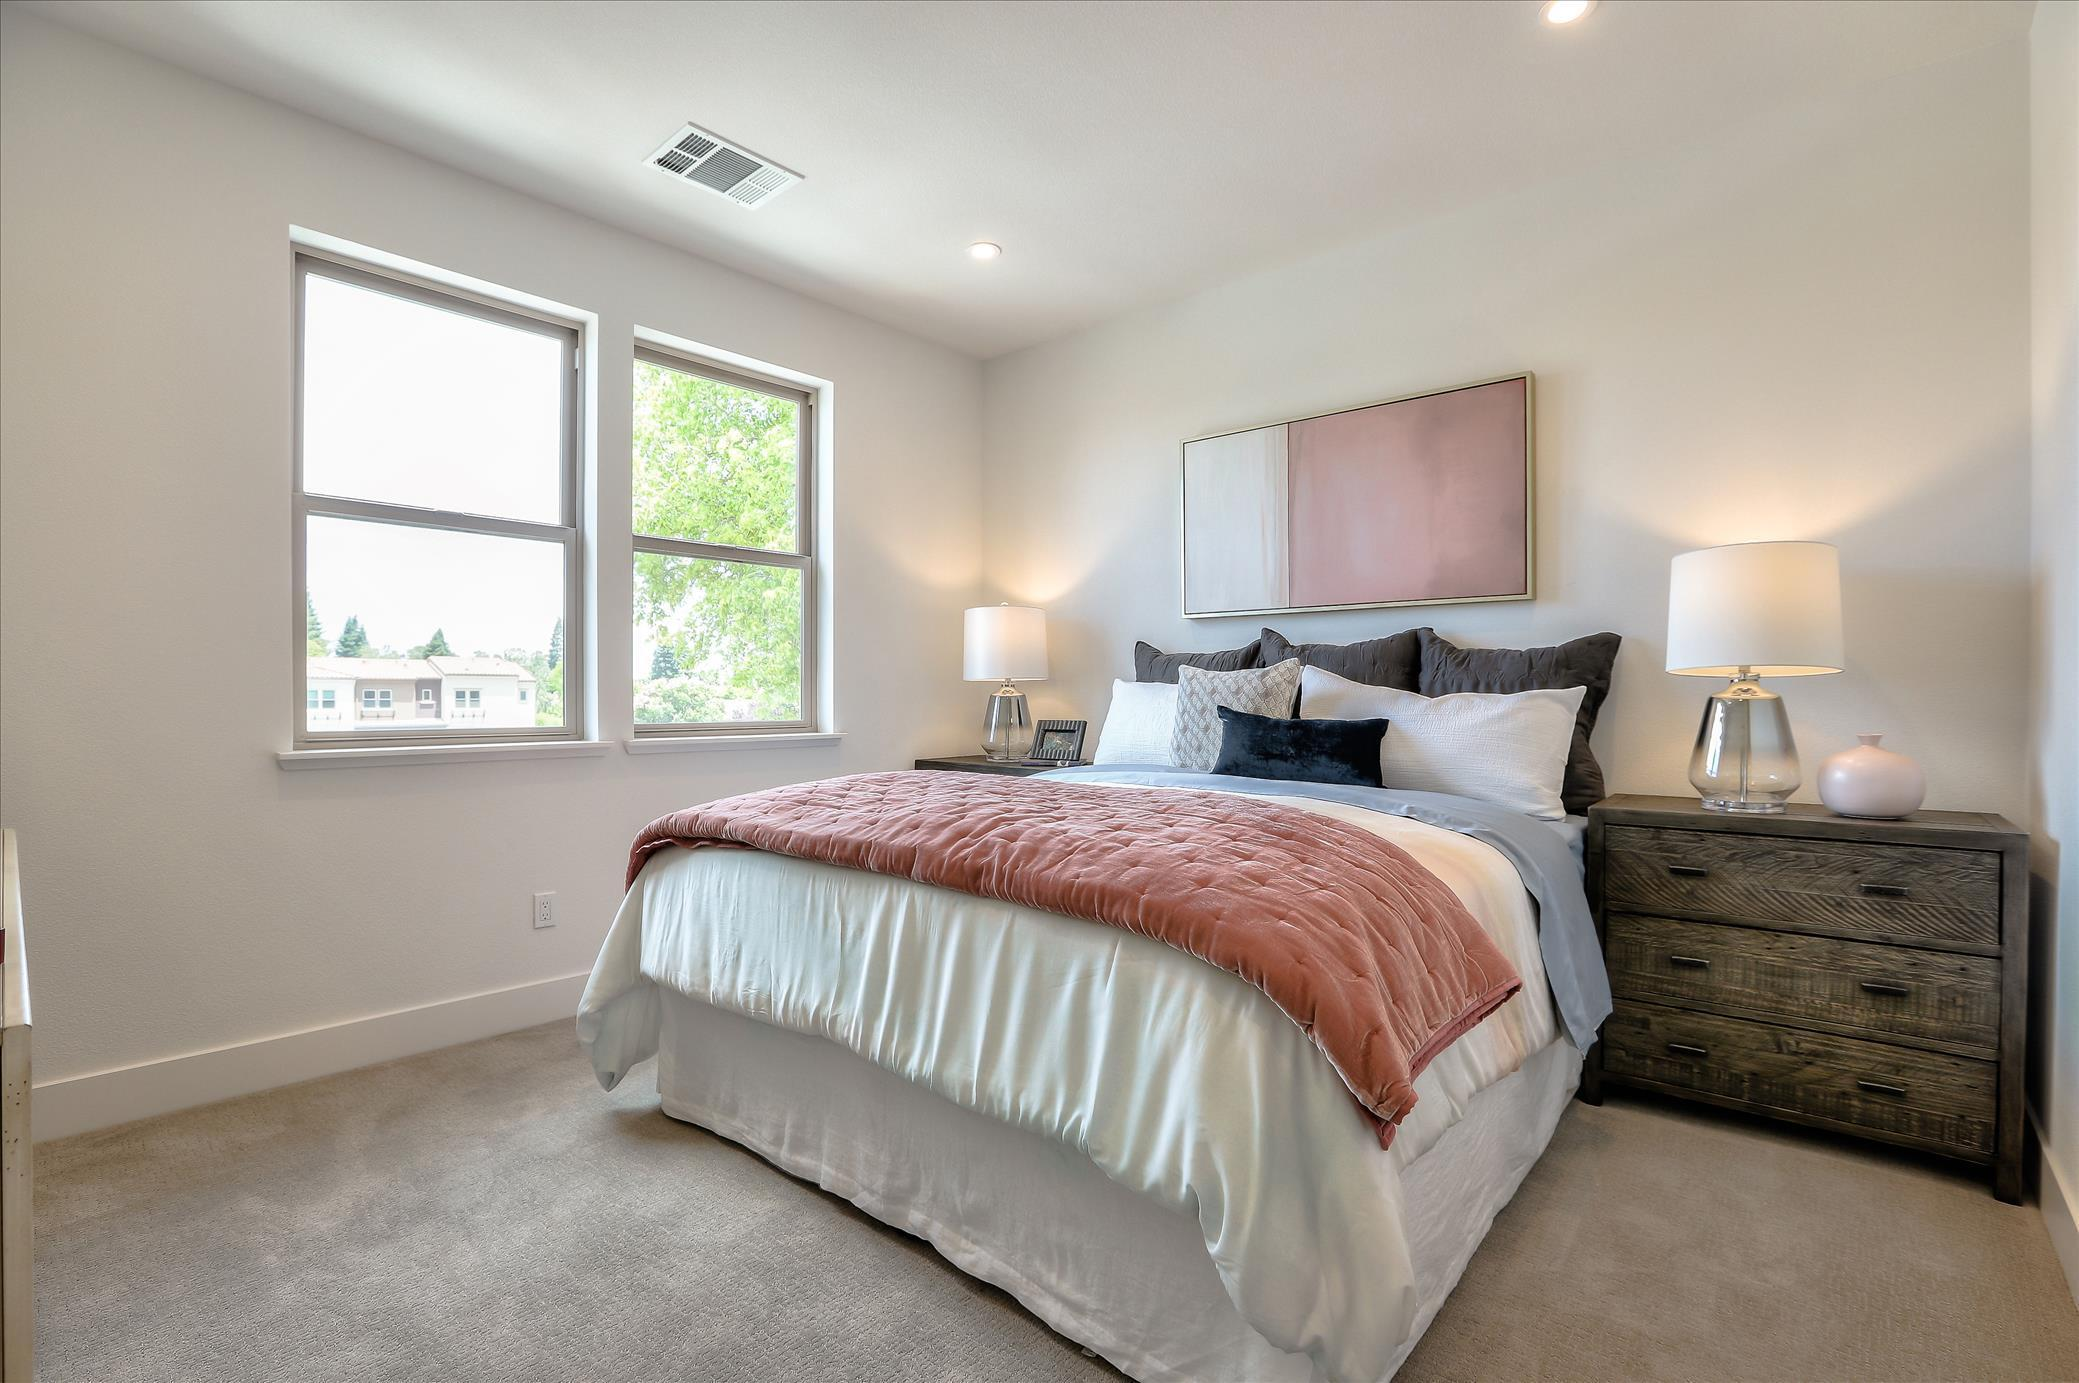 Bedroom featured in the Marquetta Residence 1 By SummerHill Homes in San Jose, CA